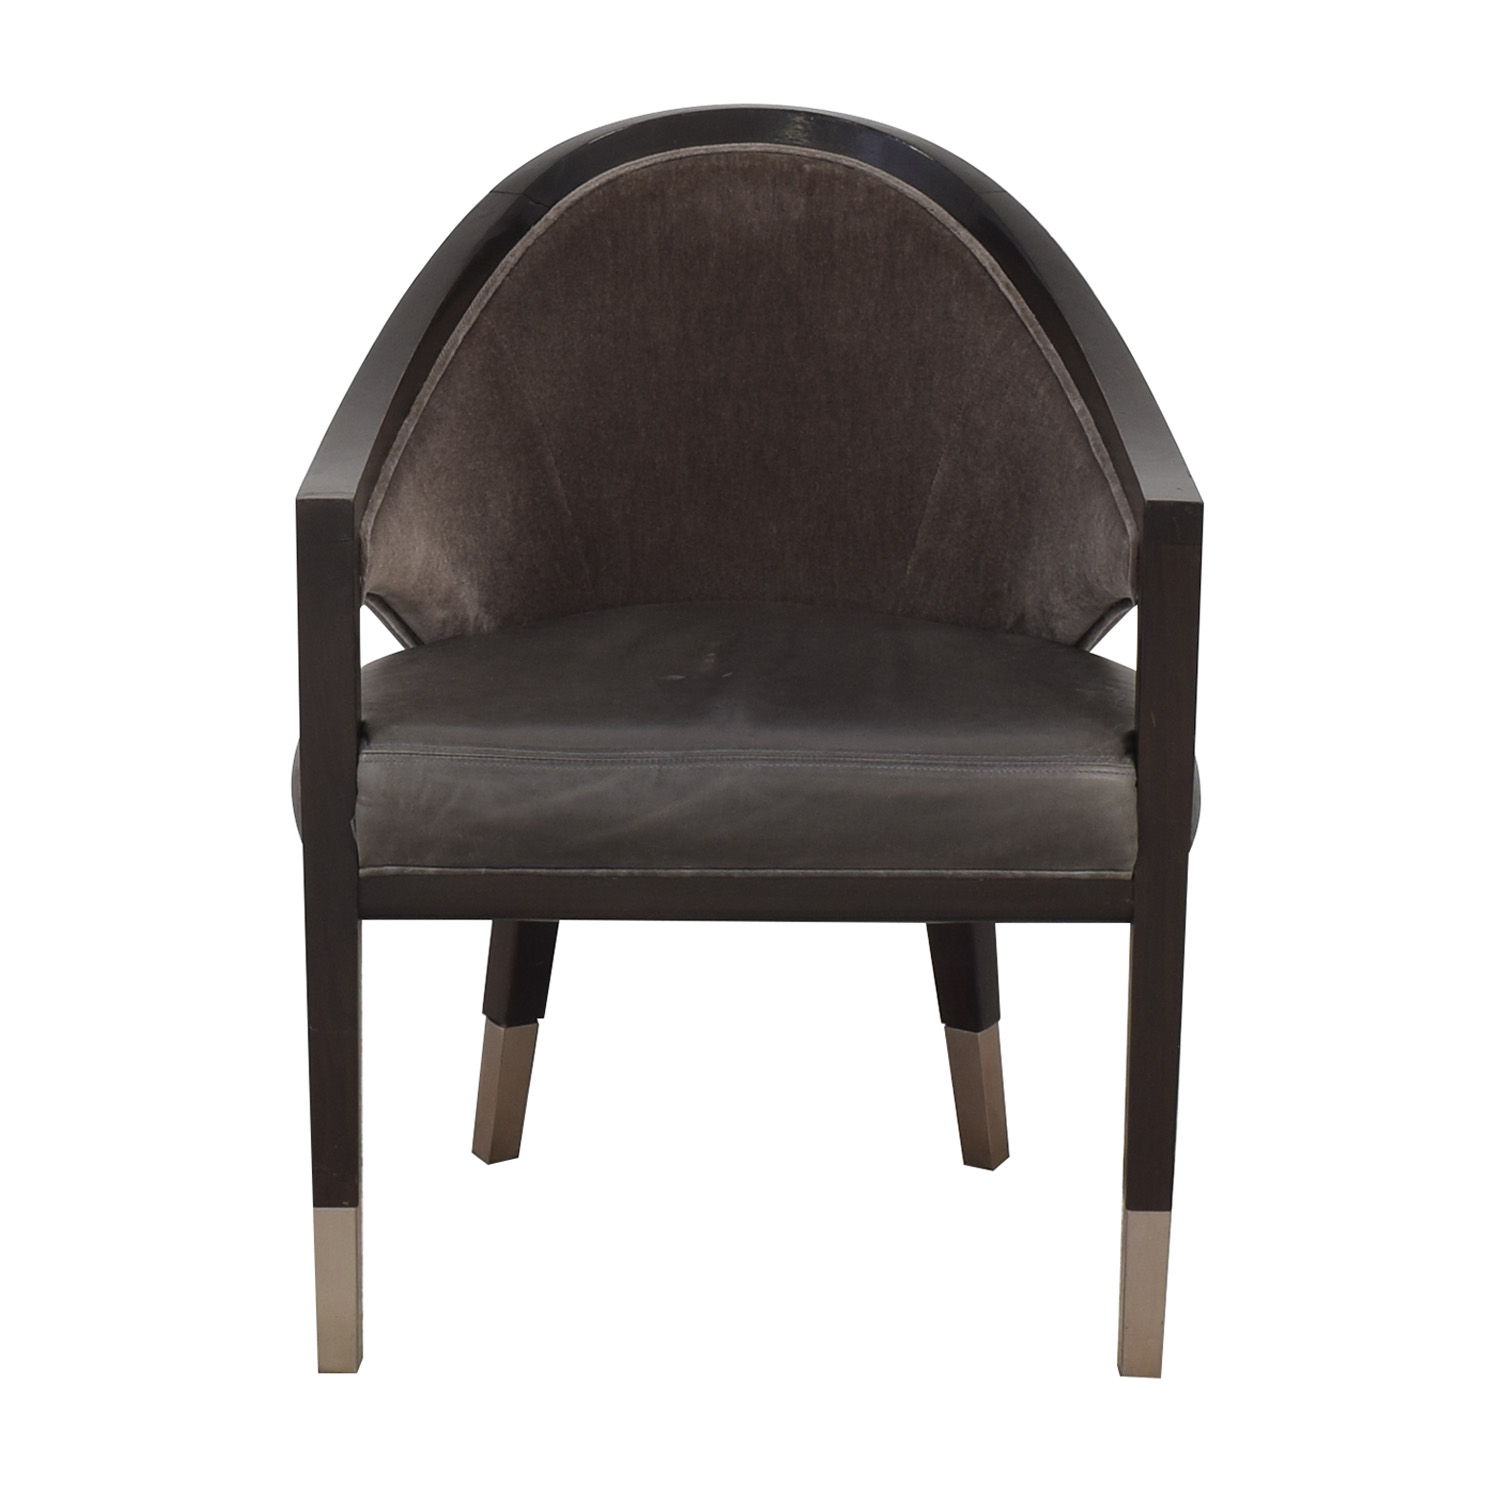 Allied Form Works Allied Works Dining Room Chair nyc